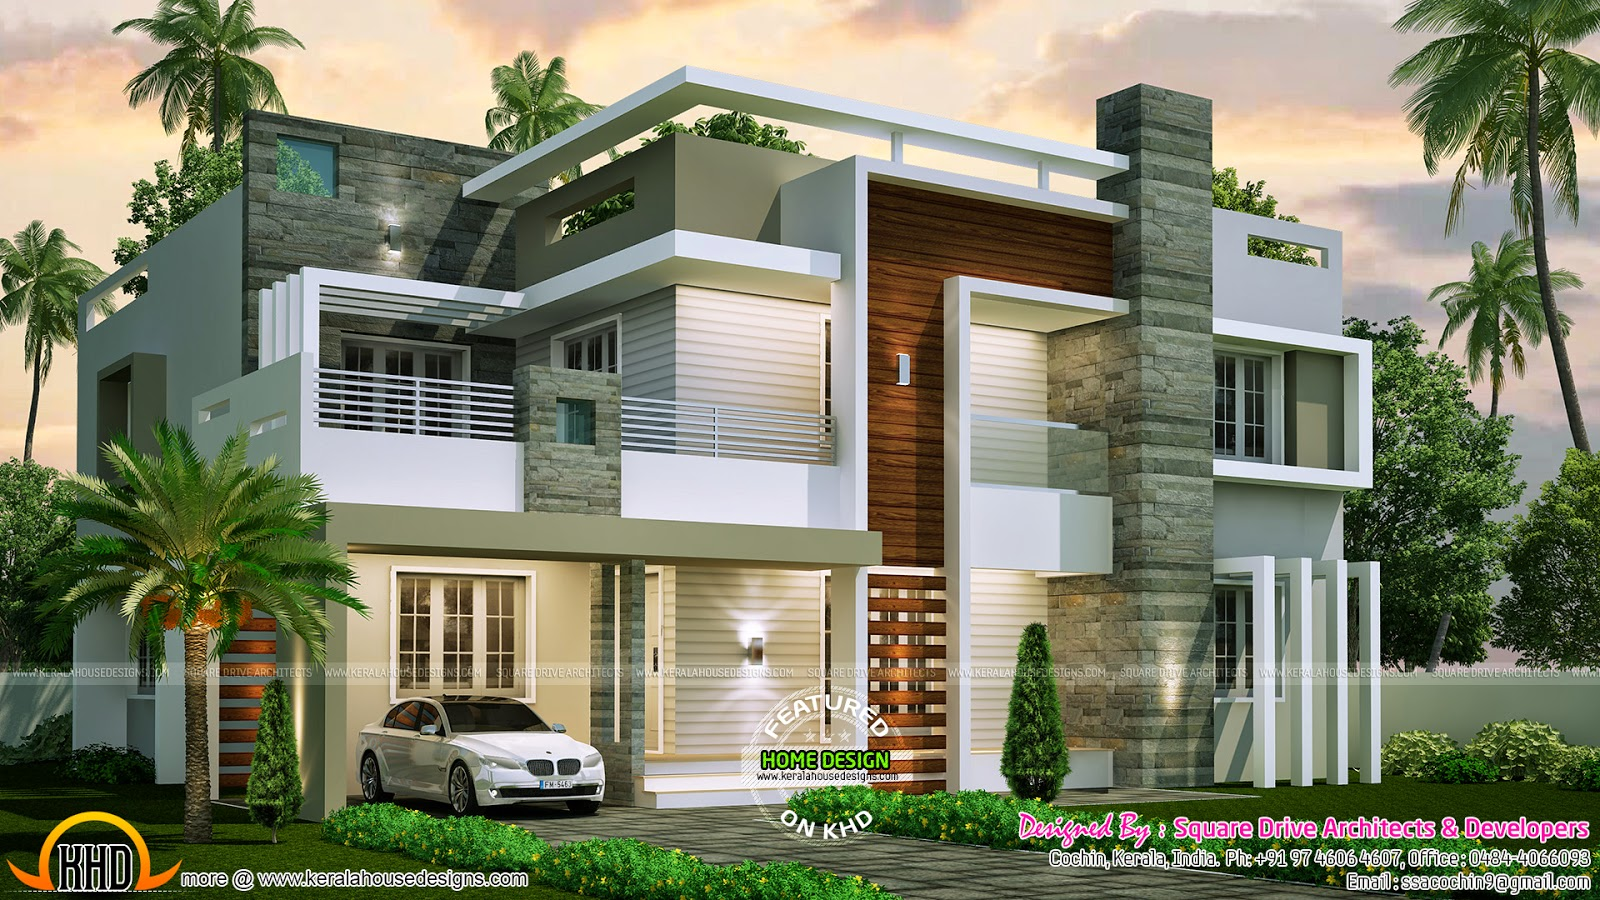 4 bedroom contemporary home design kerala home design for House design in small area